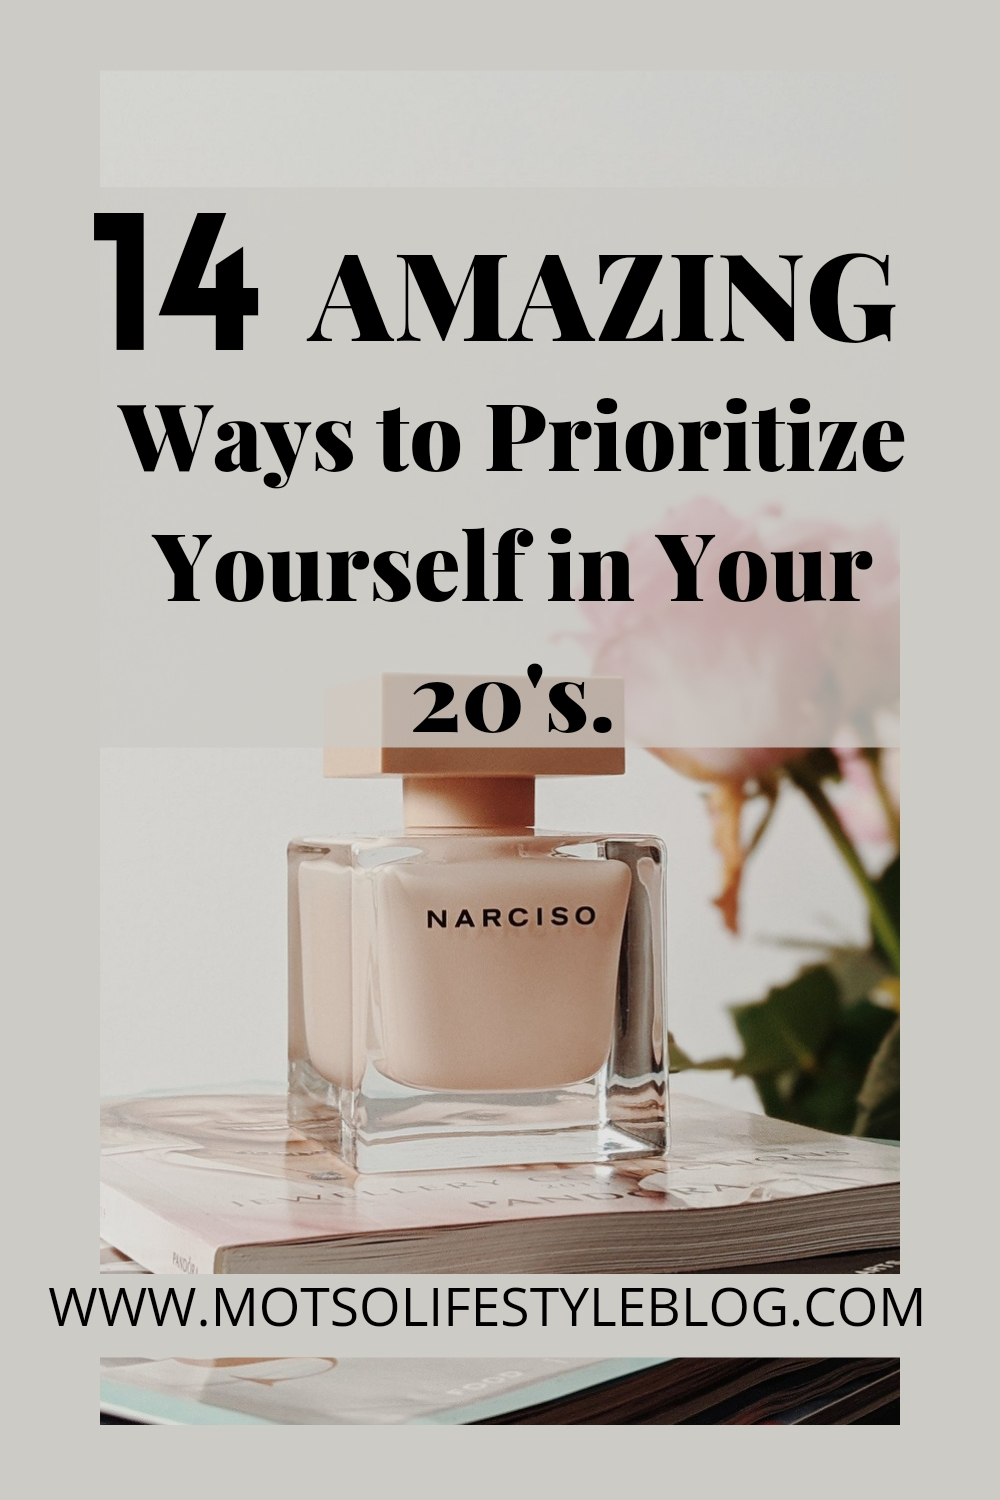 14 Amazing Ways to Prioritize Yourself in Your 20s pin